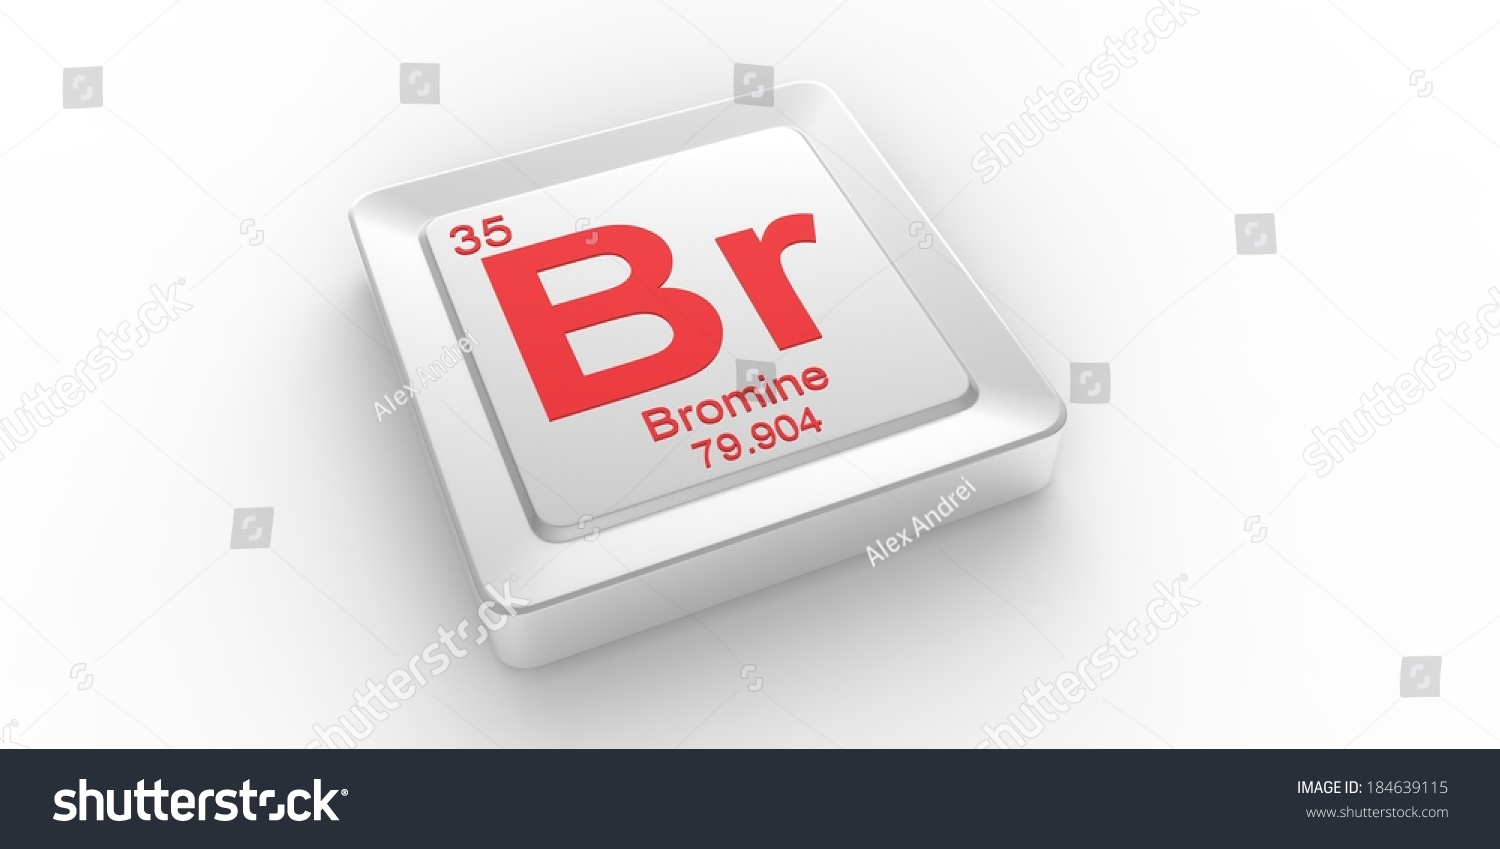 Br symbol 35 material bromine chemical stock illustration 184639115 br symbol 35 material for bromine chemical element of the periodic table urtaz Image collections